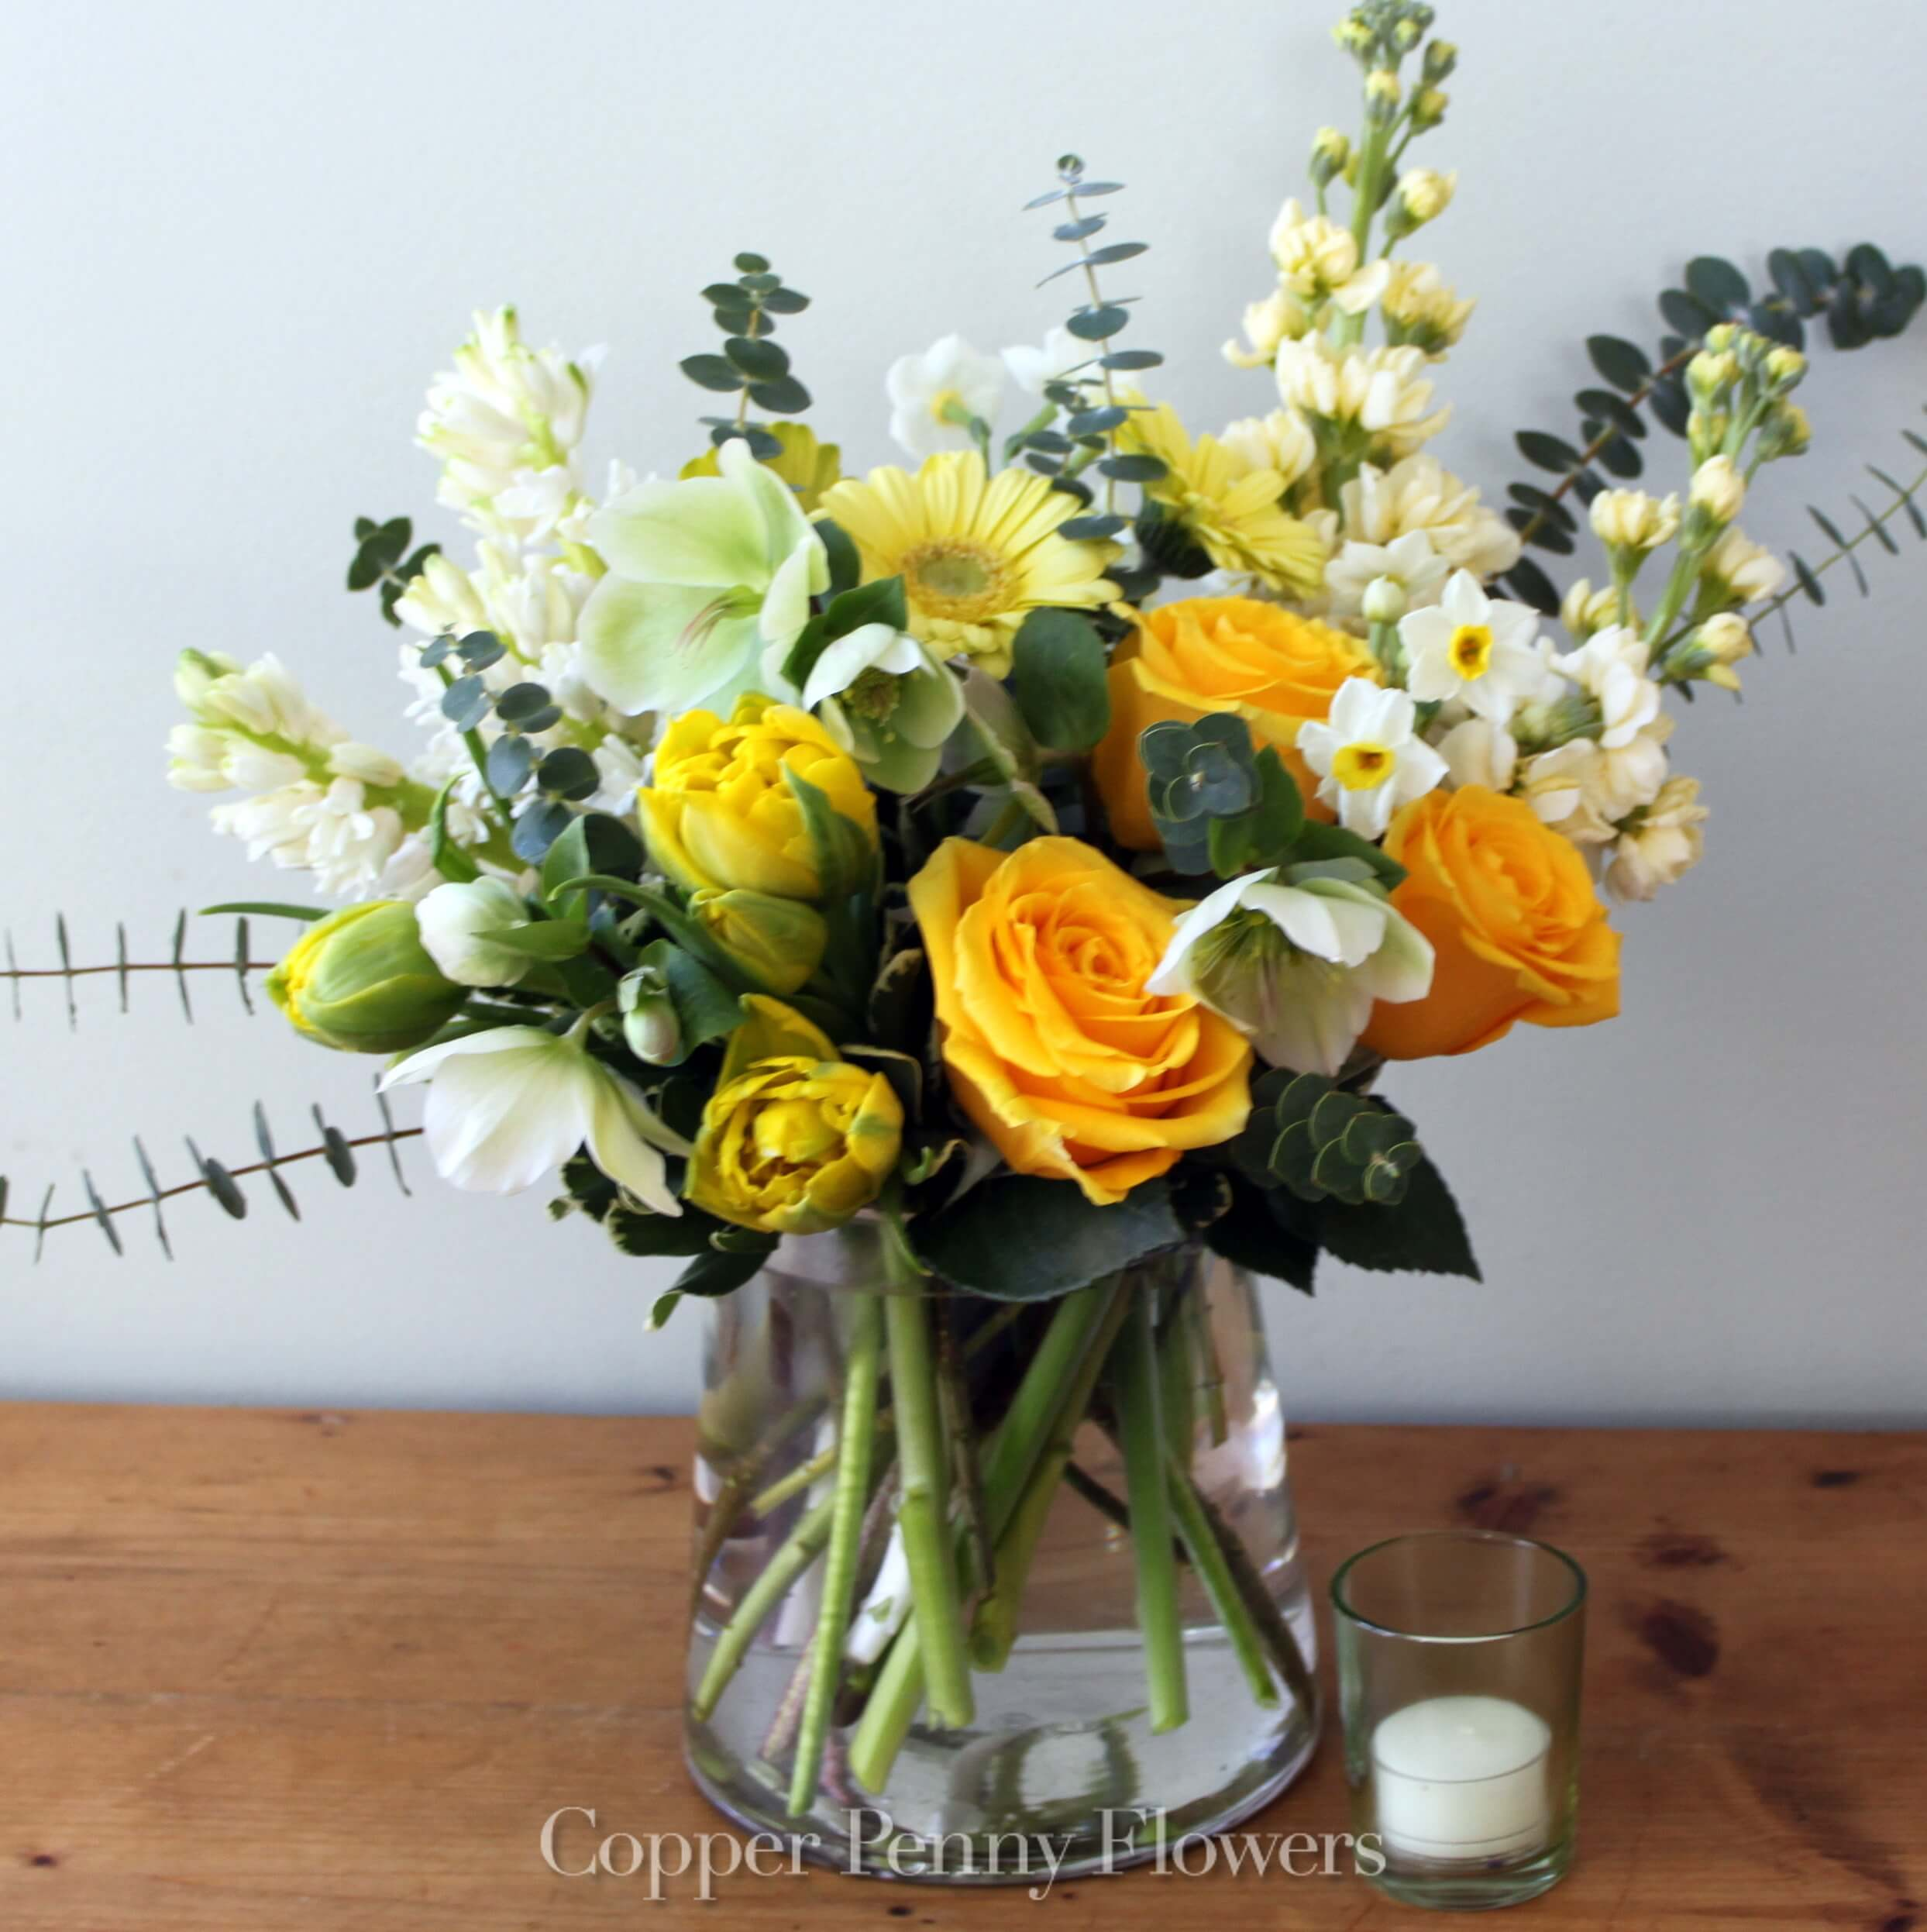 Pure Honey flower arrangement features roses, tulips, and stock in shades of yellow, cream, and white